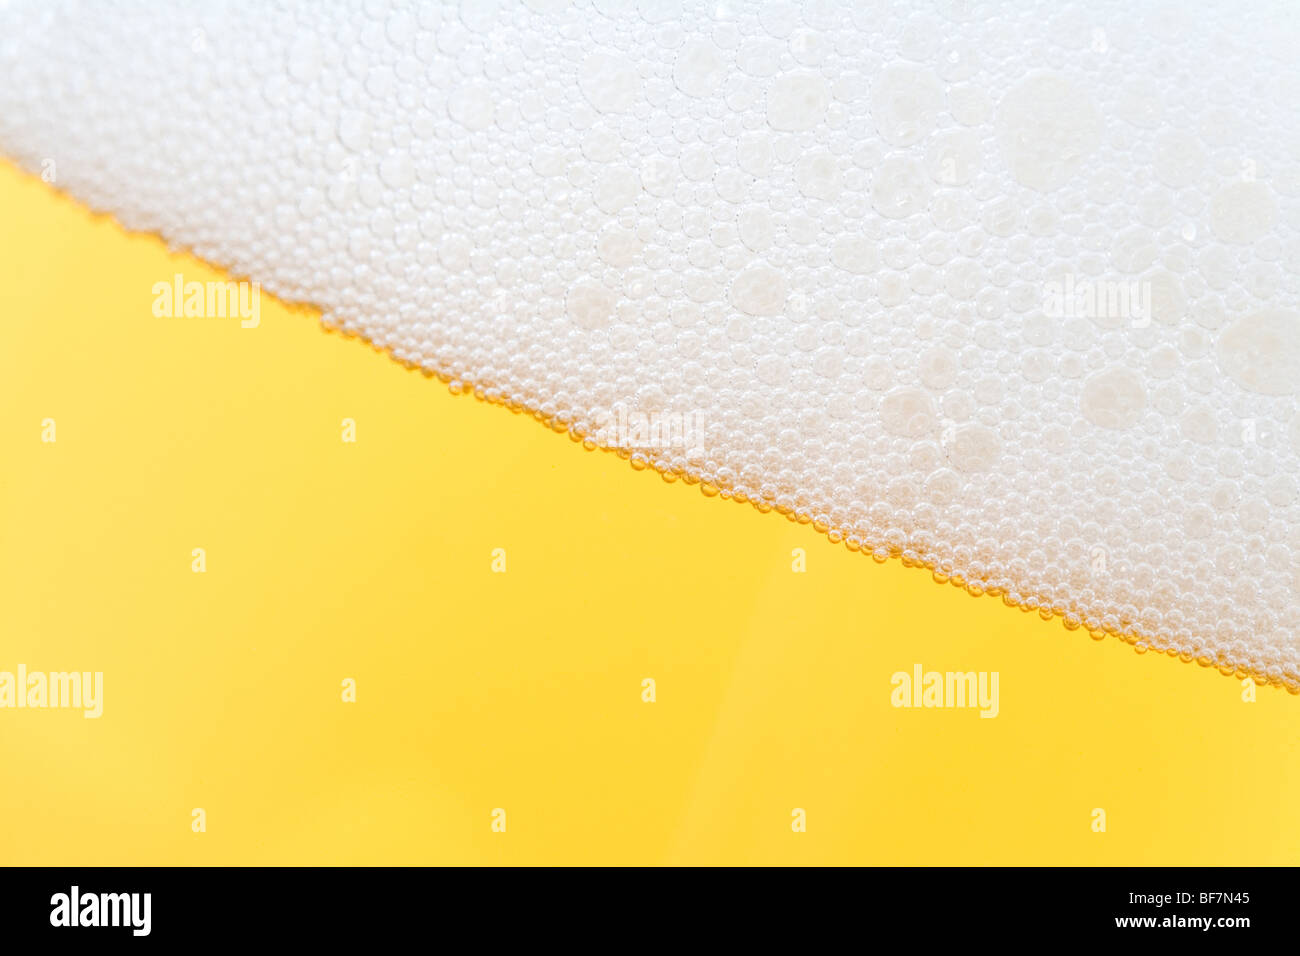 Beer close up shot for background use - Stock Image